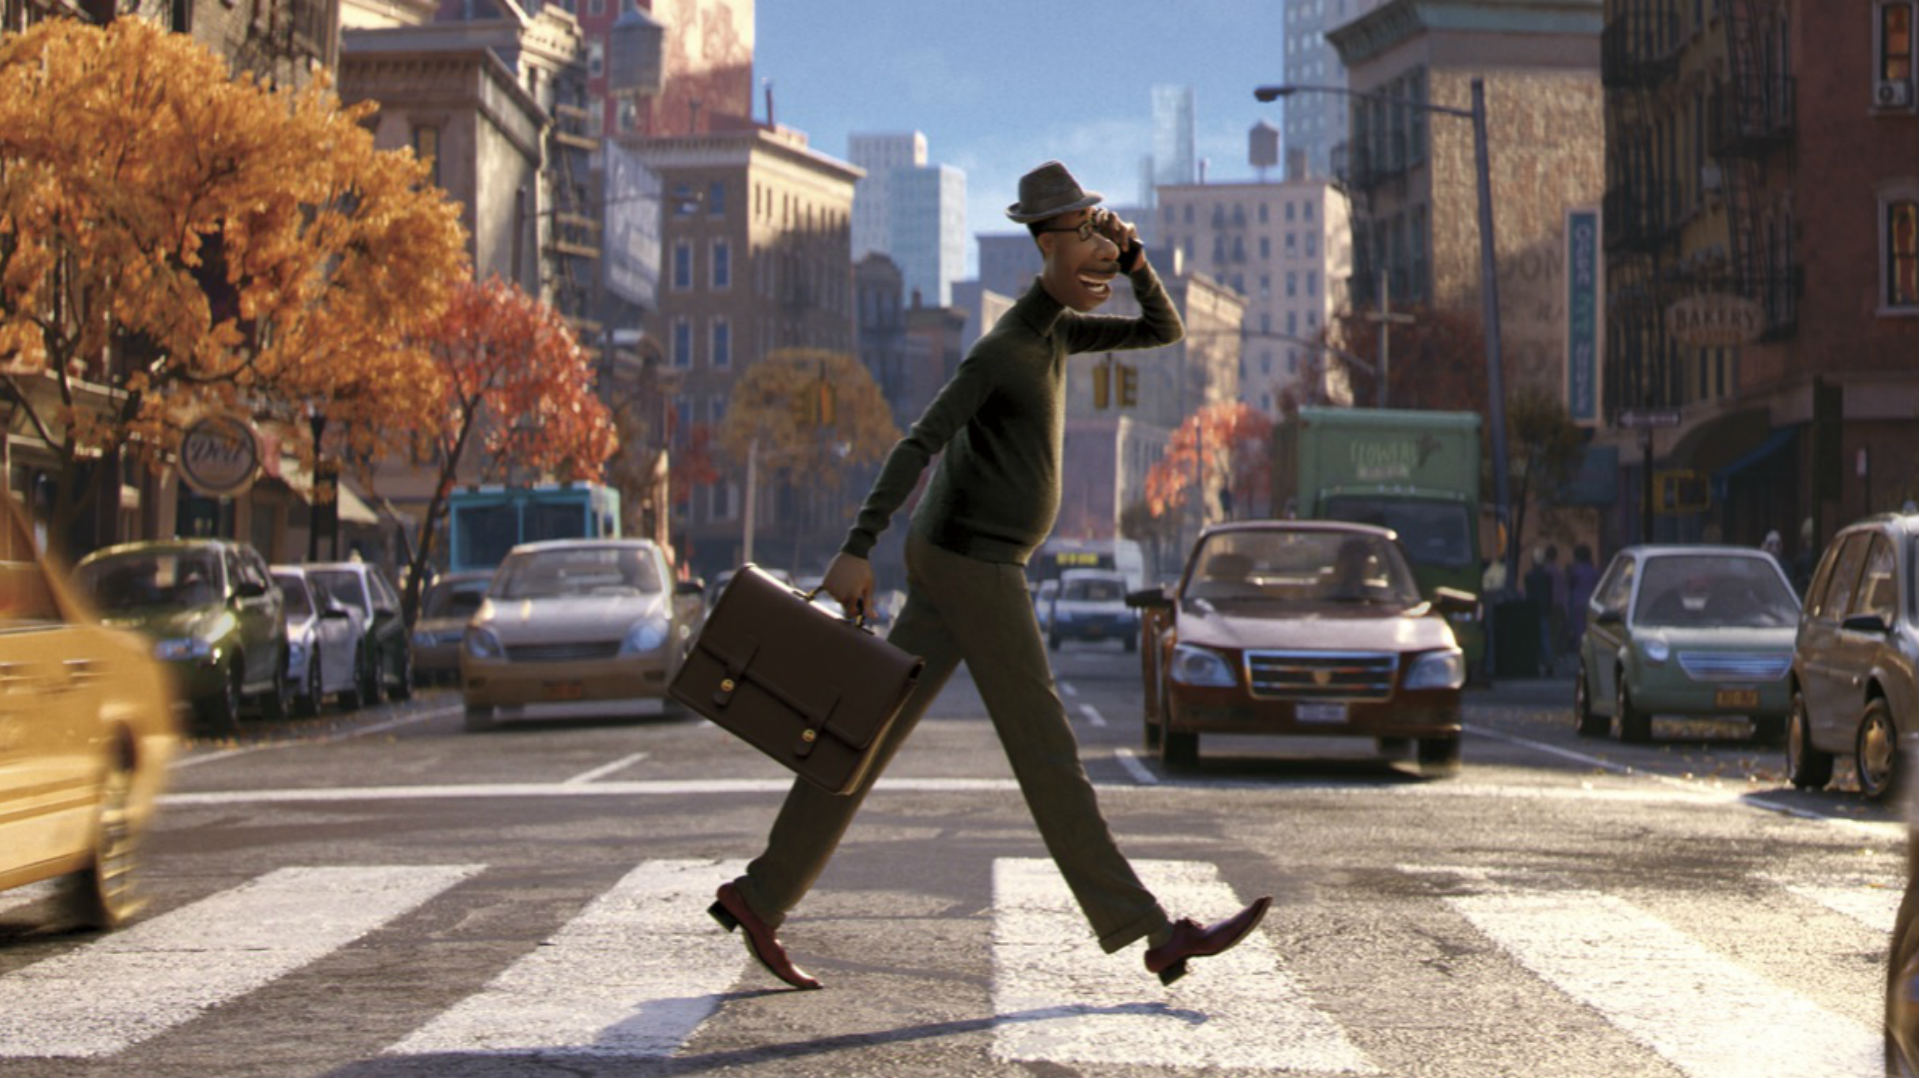 Disney/Pixar's Soul Trailer Wants to Bring out the Real You